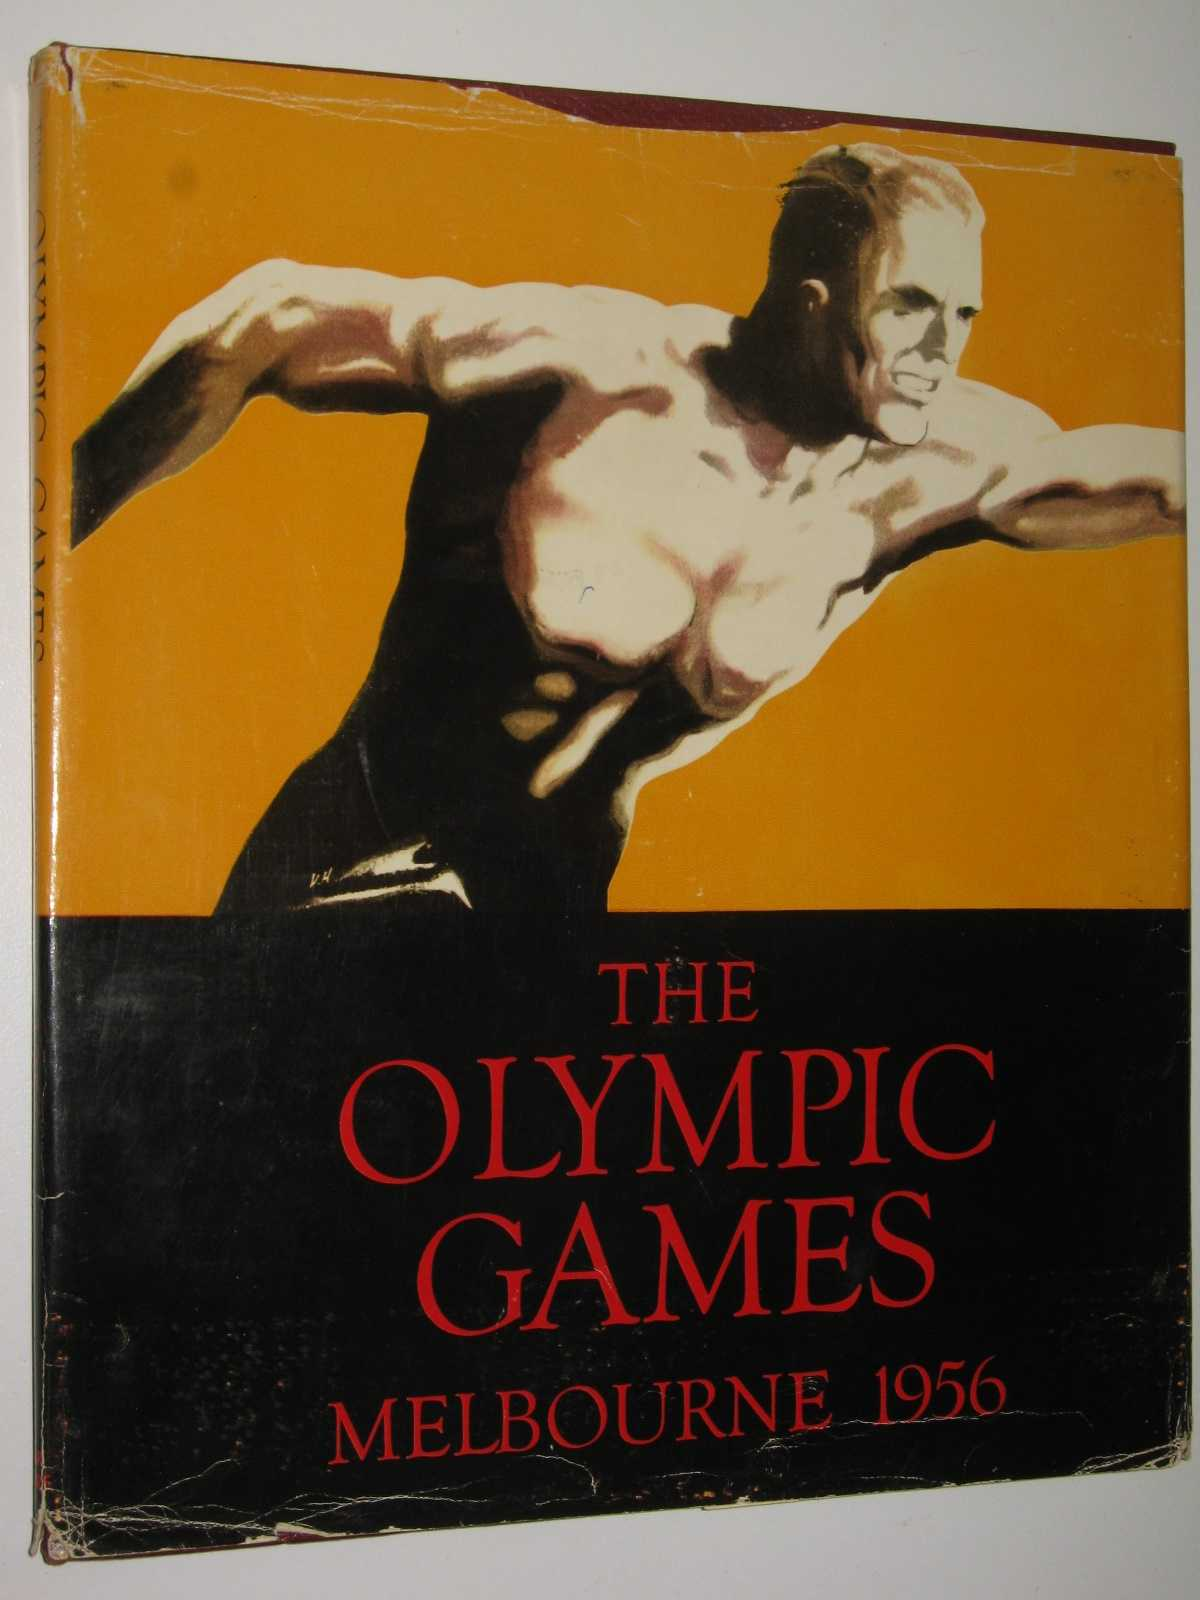 The Olympic Games Melbourne 1956, Author Not Stated